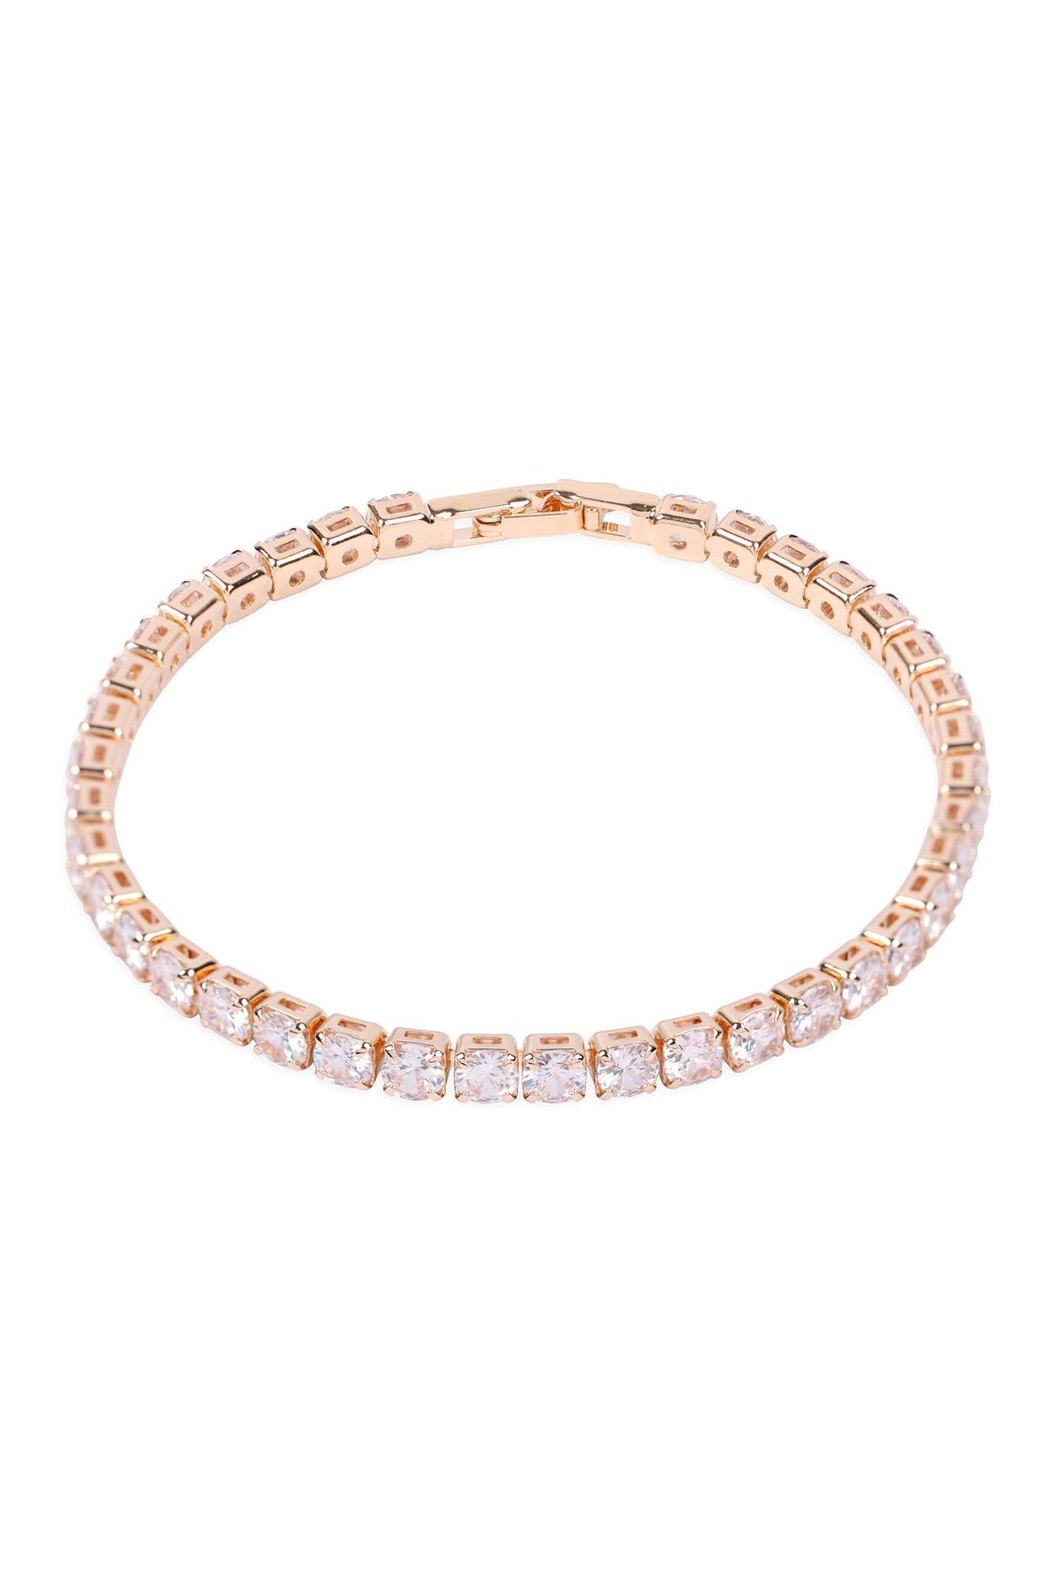 Riah Fashion Cubic-Zirconia-4mm-1-Row-Bracelet - Main Image